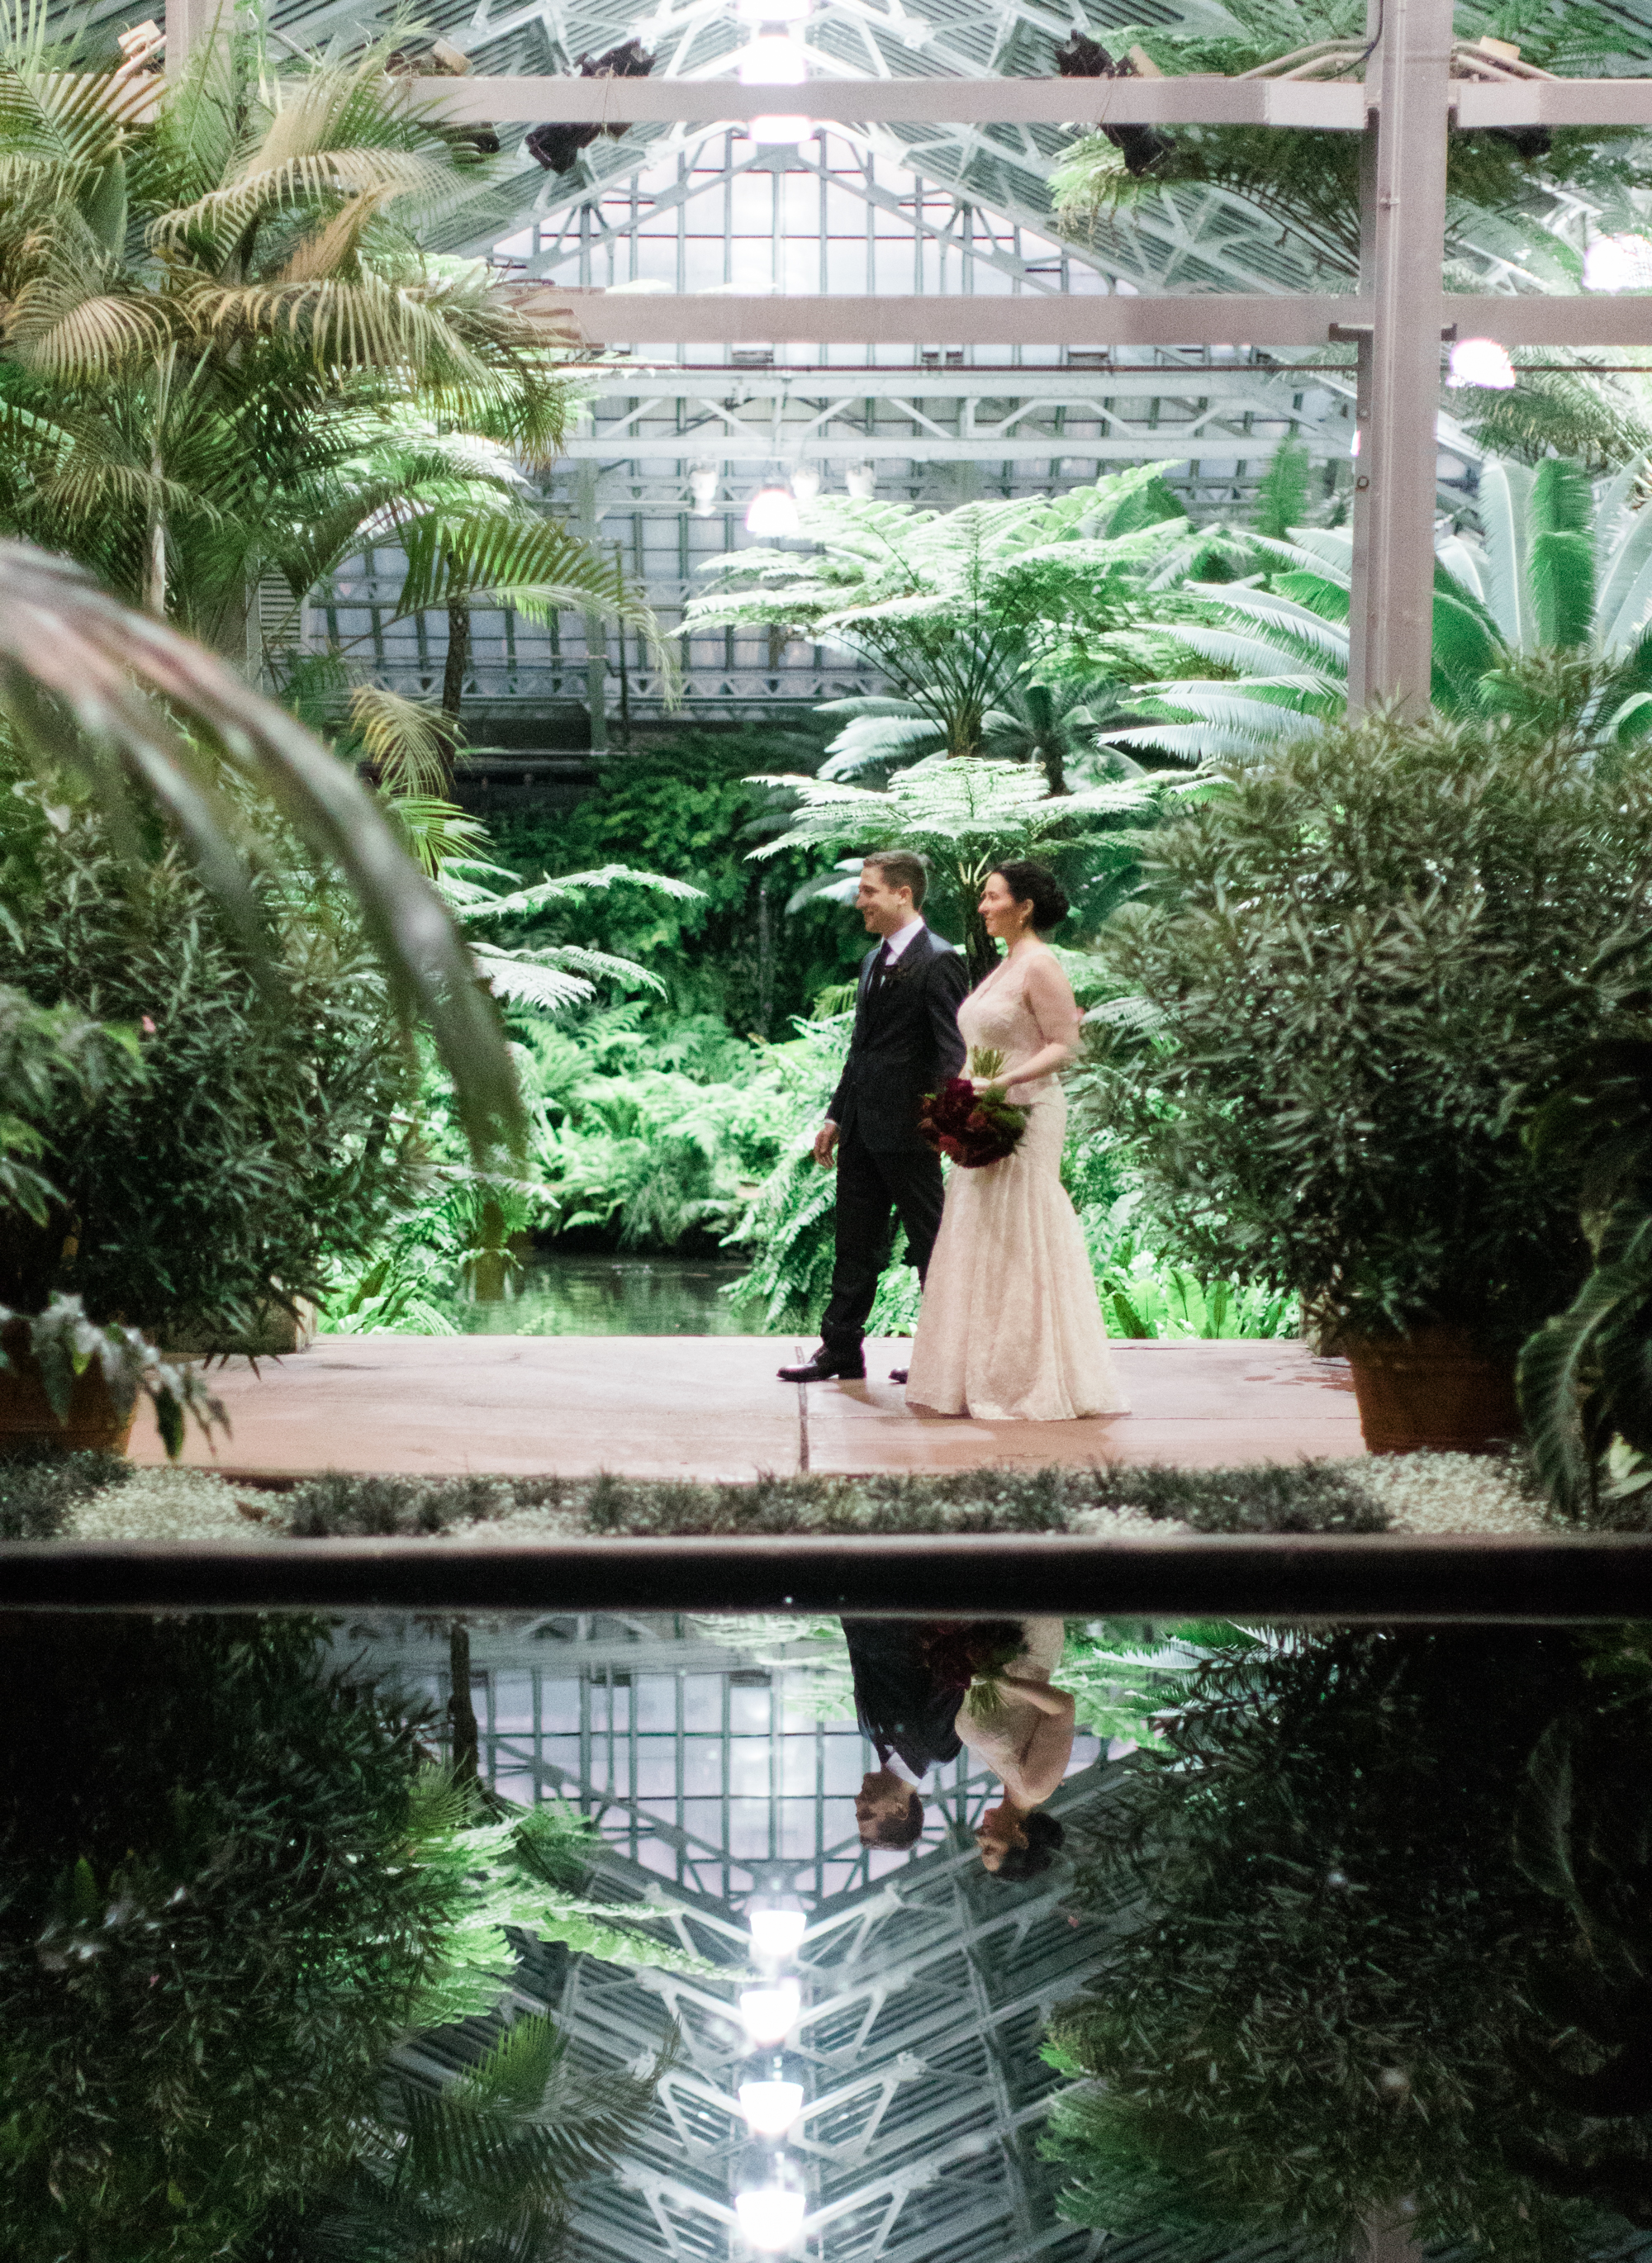 Bonphotage Garfield Conservatory Wedding Photography